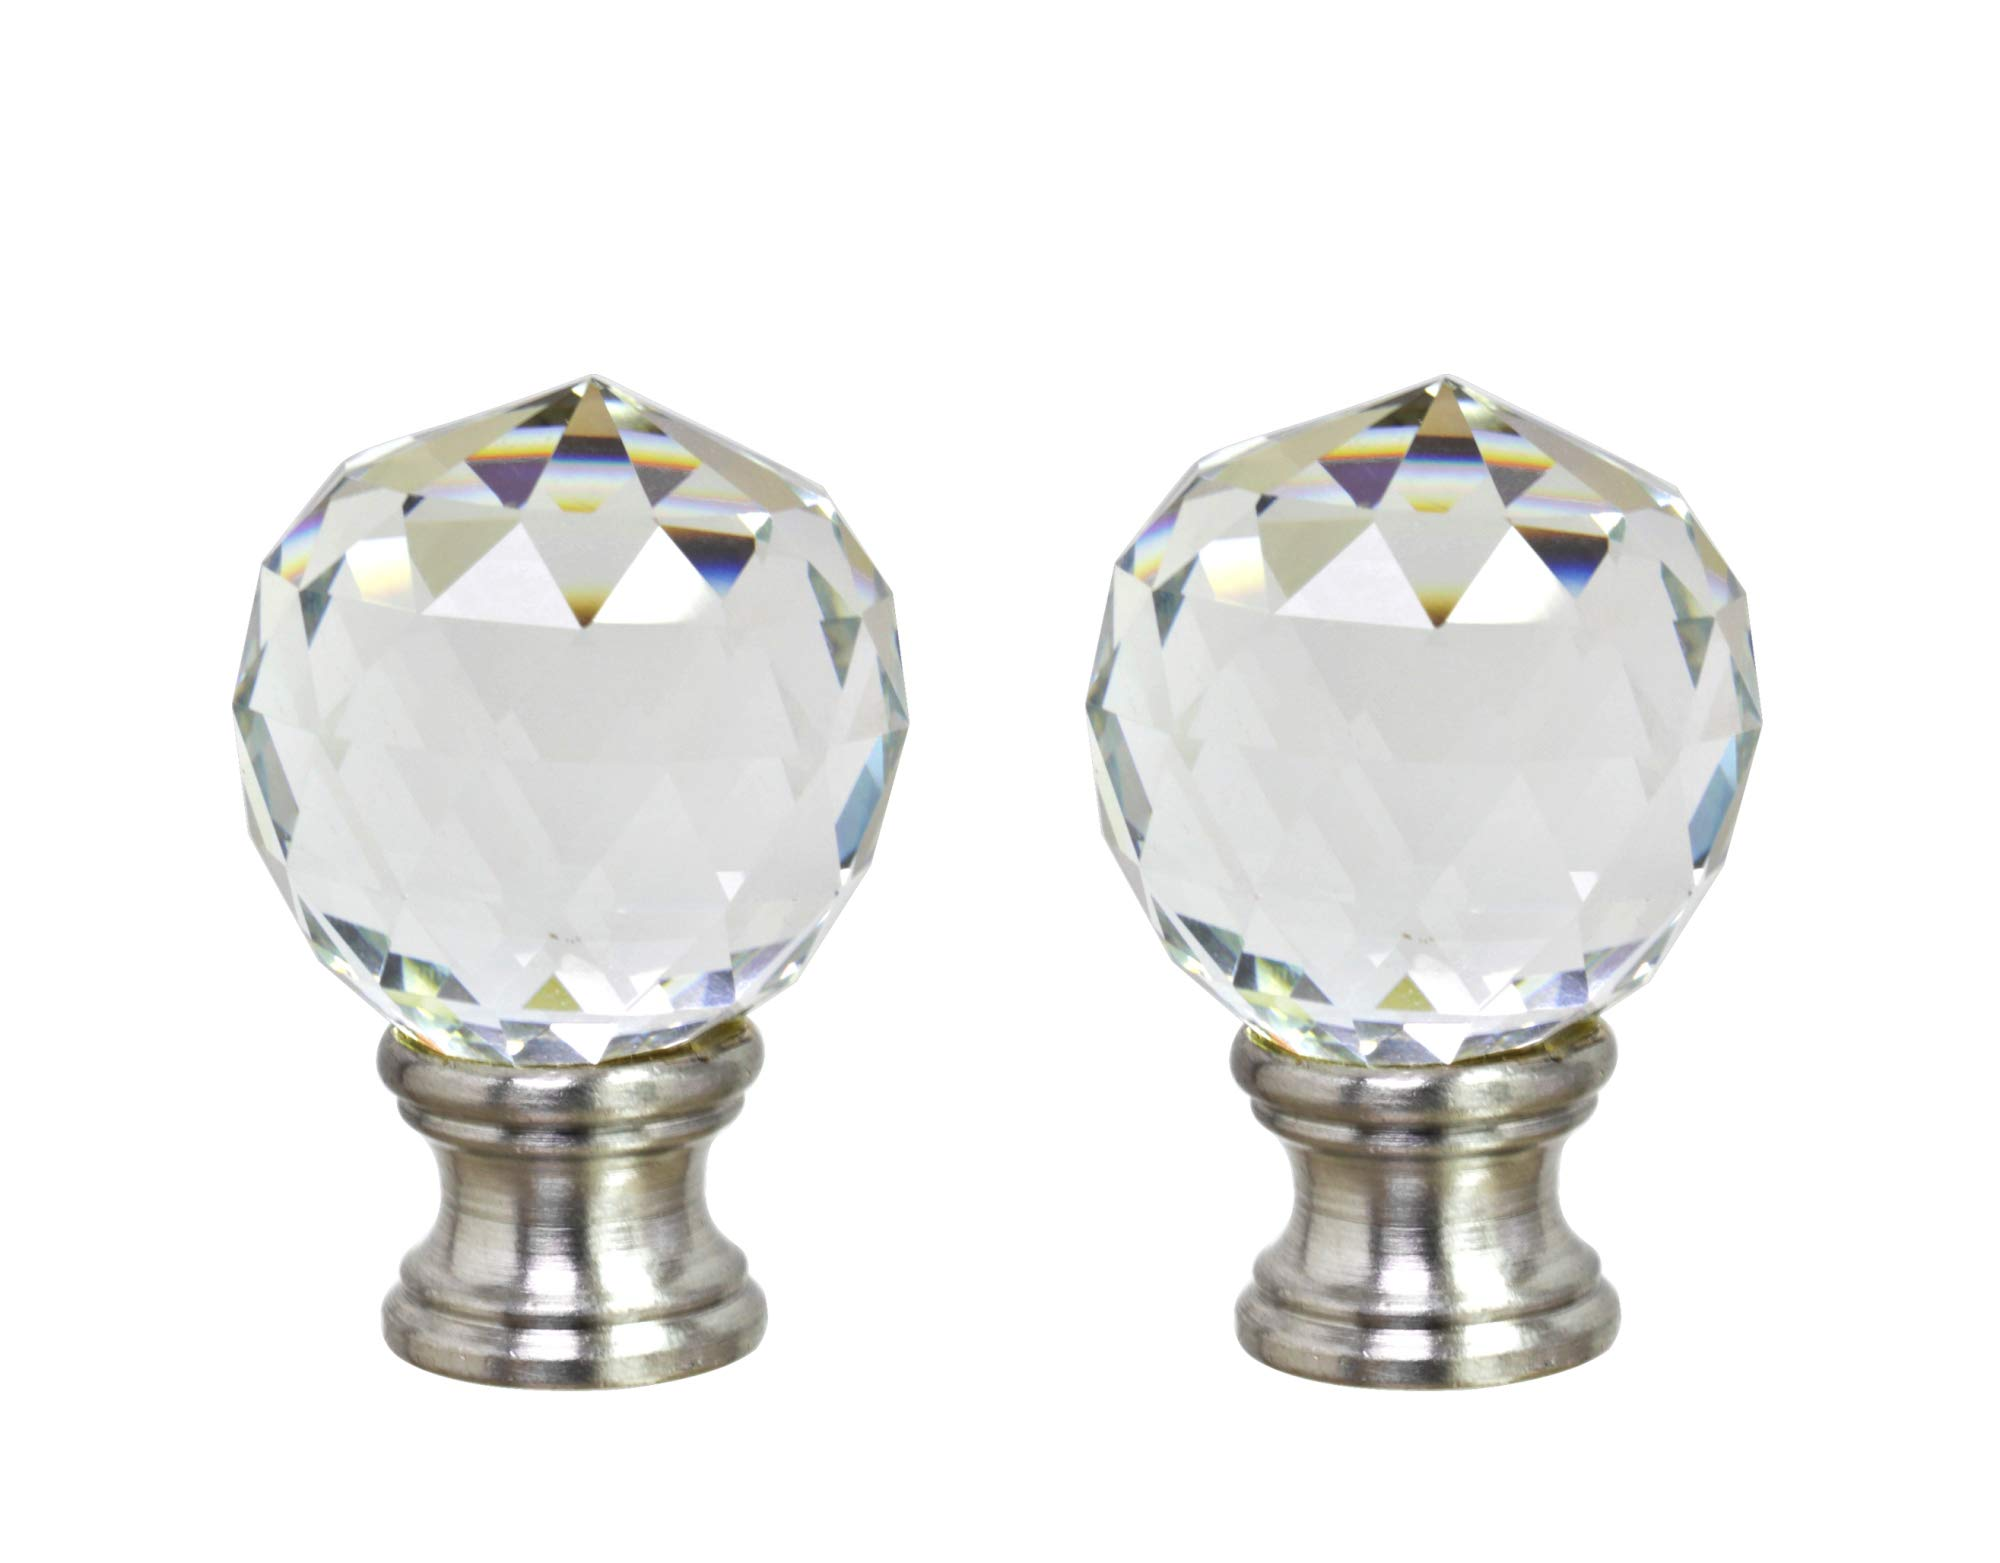 Aspen Creative 24008-12, 2 Pack, Clear Faceted Crystal Lamp Brushed Nickel Finish, 1 3/4'' Tall Finial